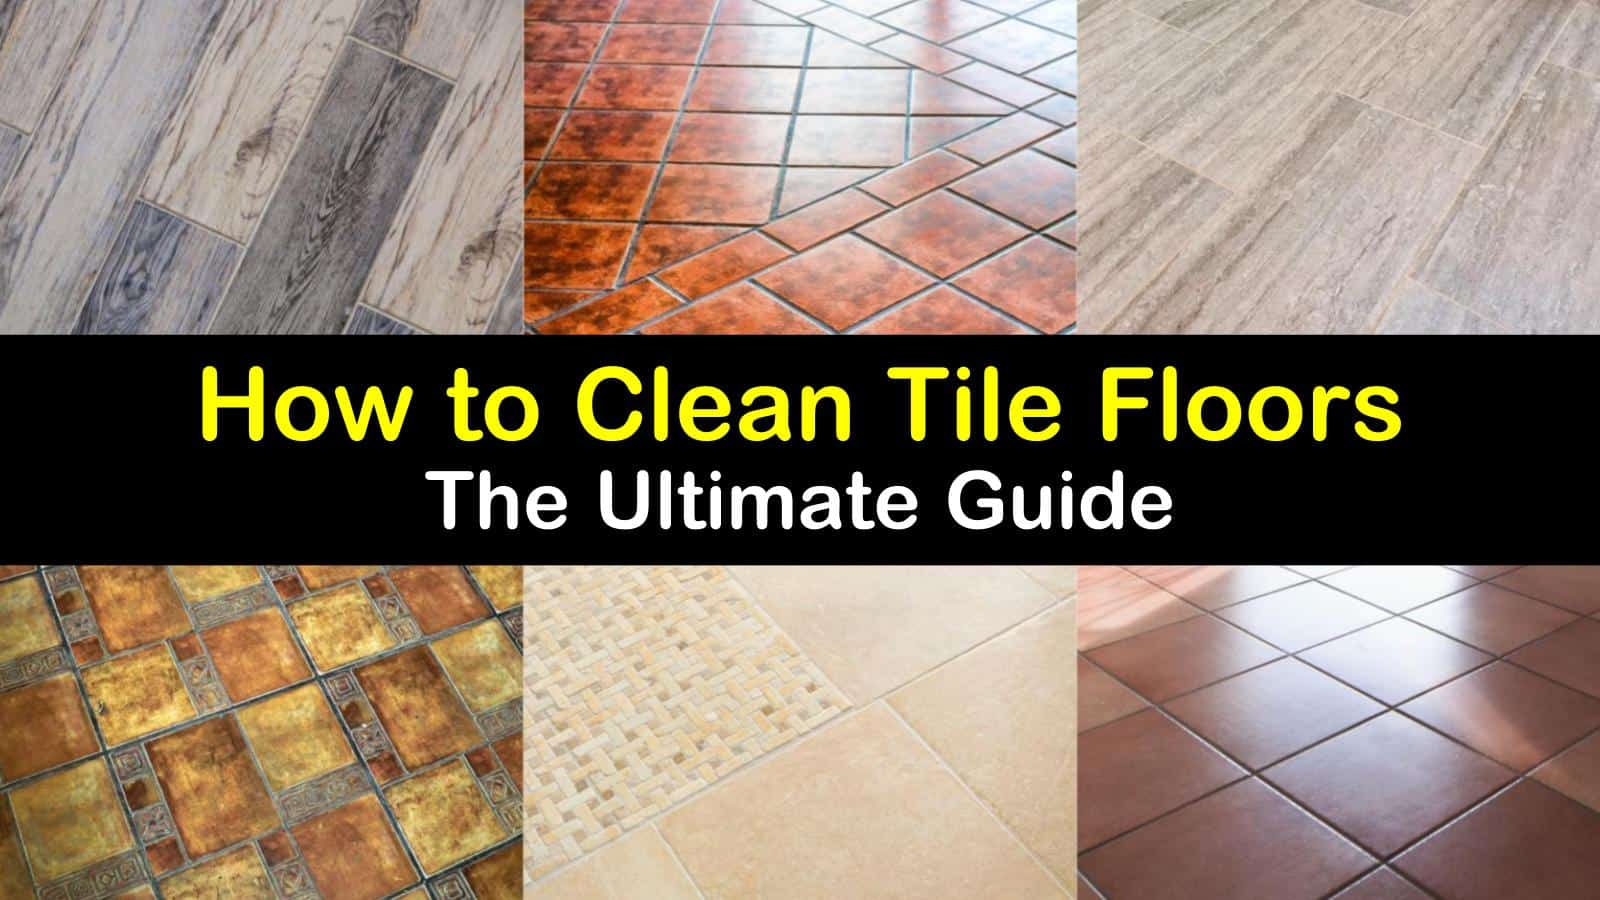 21 Versatile Ways To Clean Tile Floors